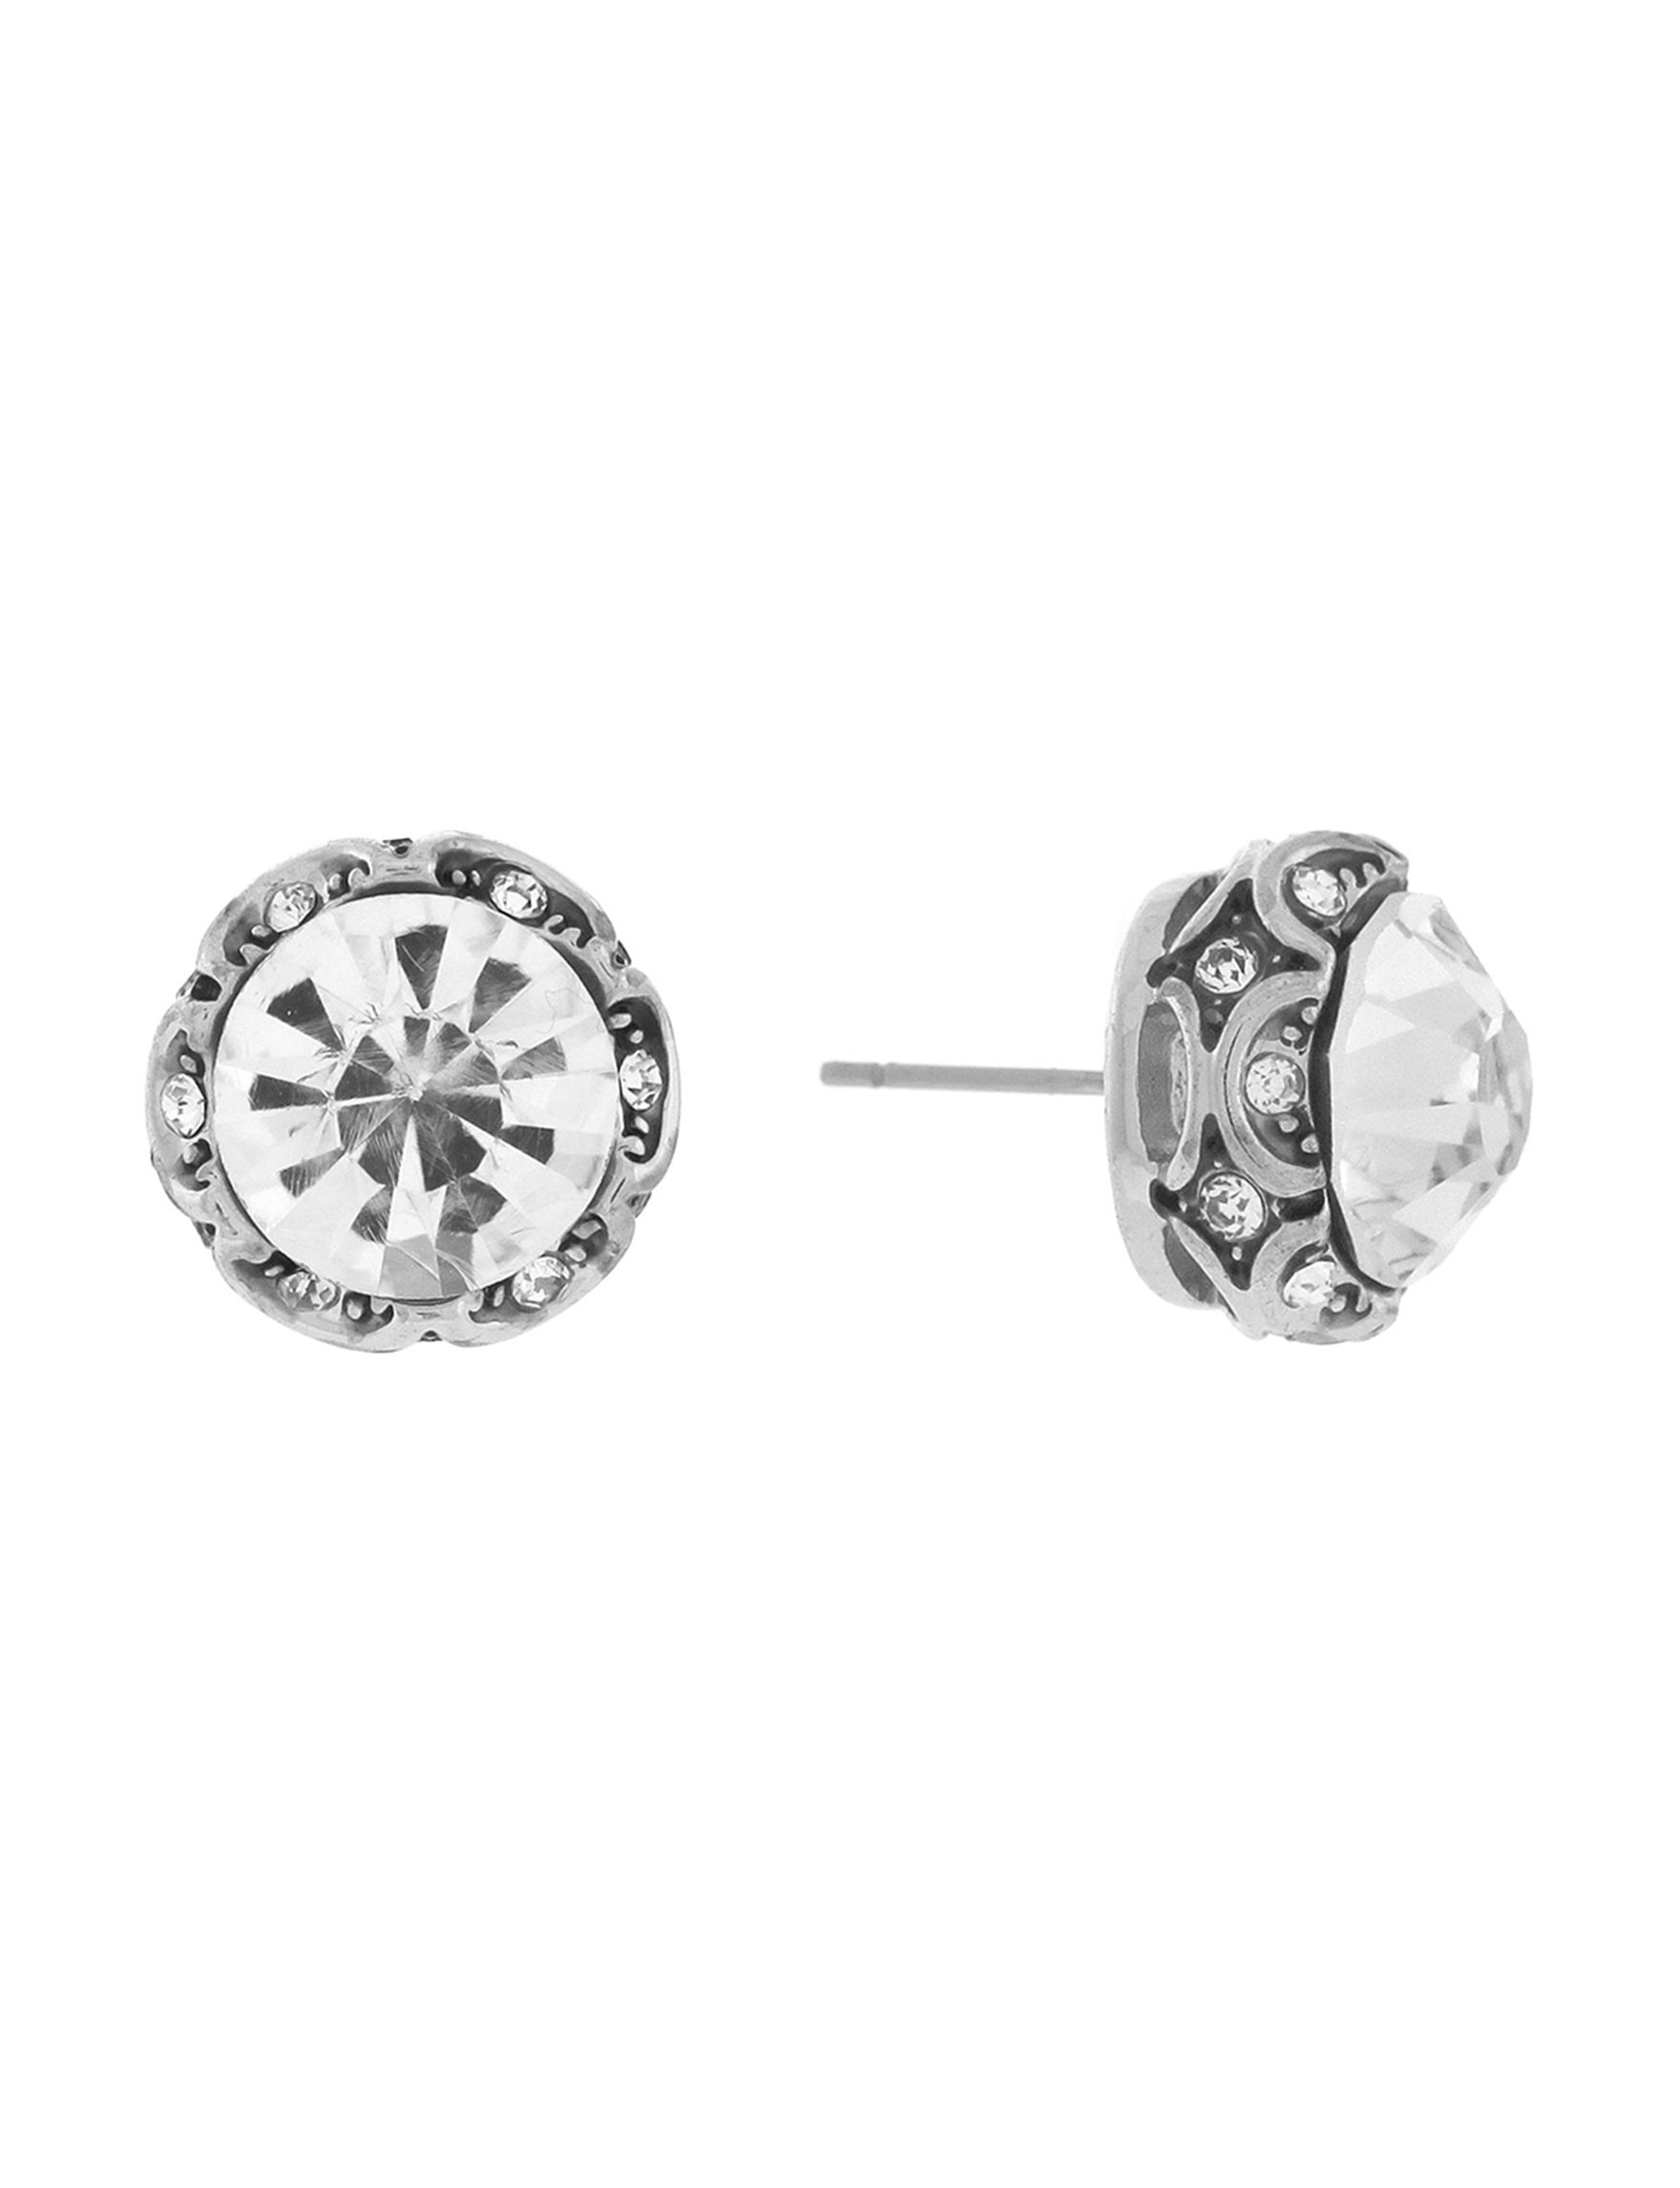 Jessica Simpson Silver Studs Earrings Fashion Jewelry